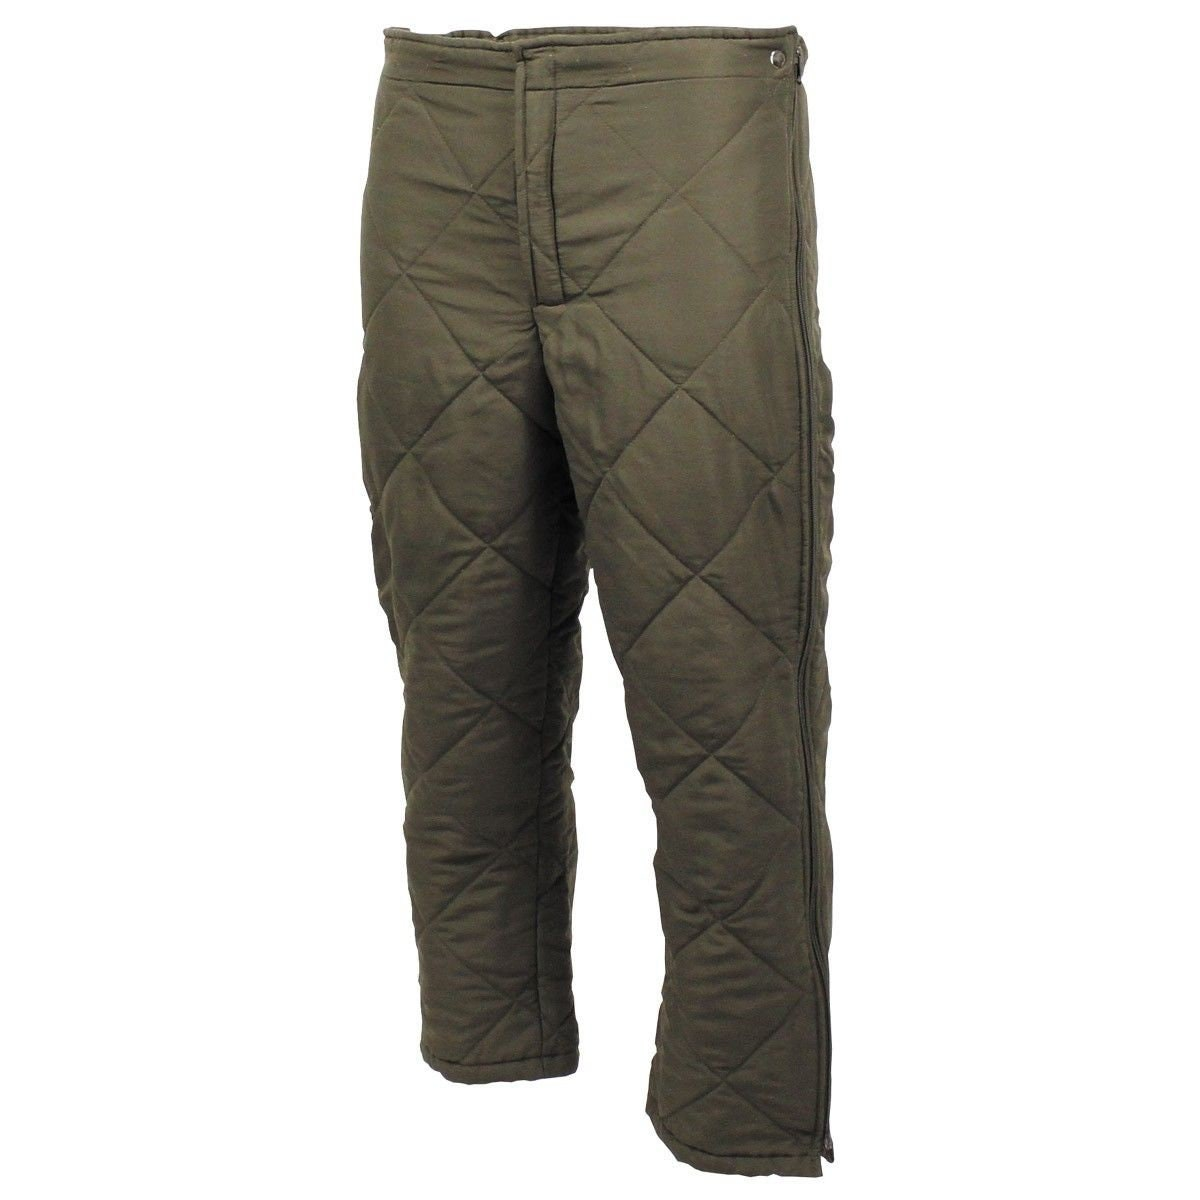 Original German army quilted pants liner trousers inner warmer thermal winter OD